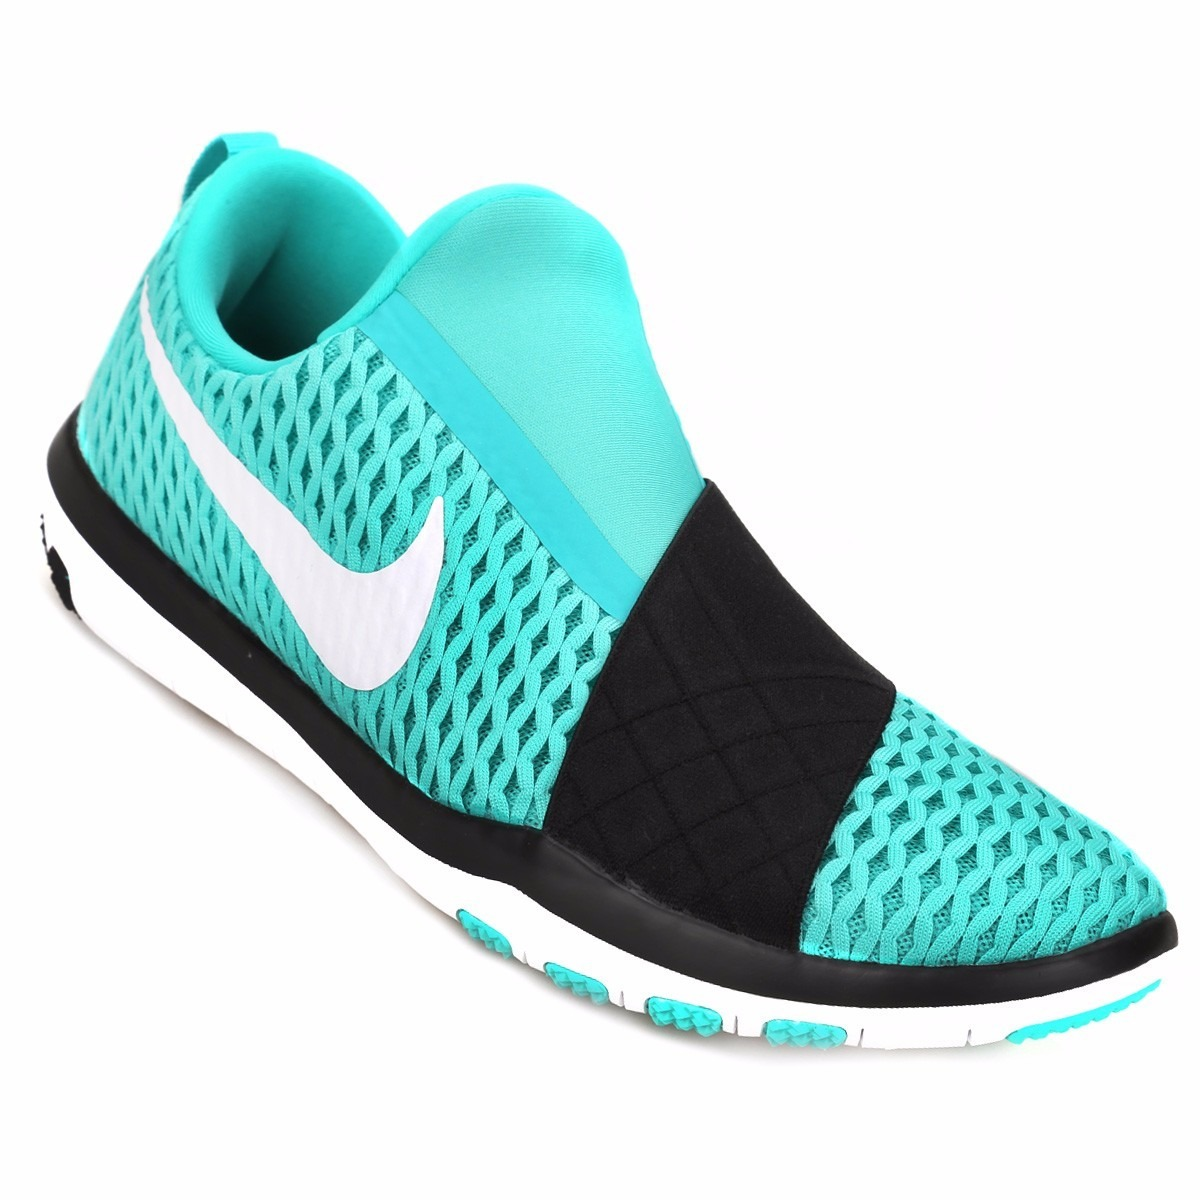 new styles b85d9 527c6 Zapatillas Mujer Nike Free Connect Oferta Entrenar Correr - $ 1.399 ...